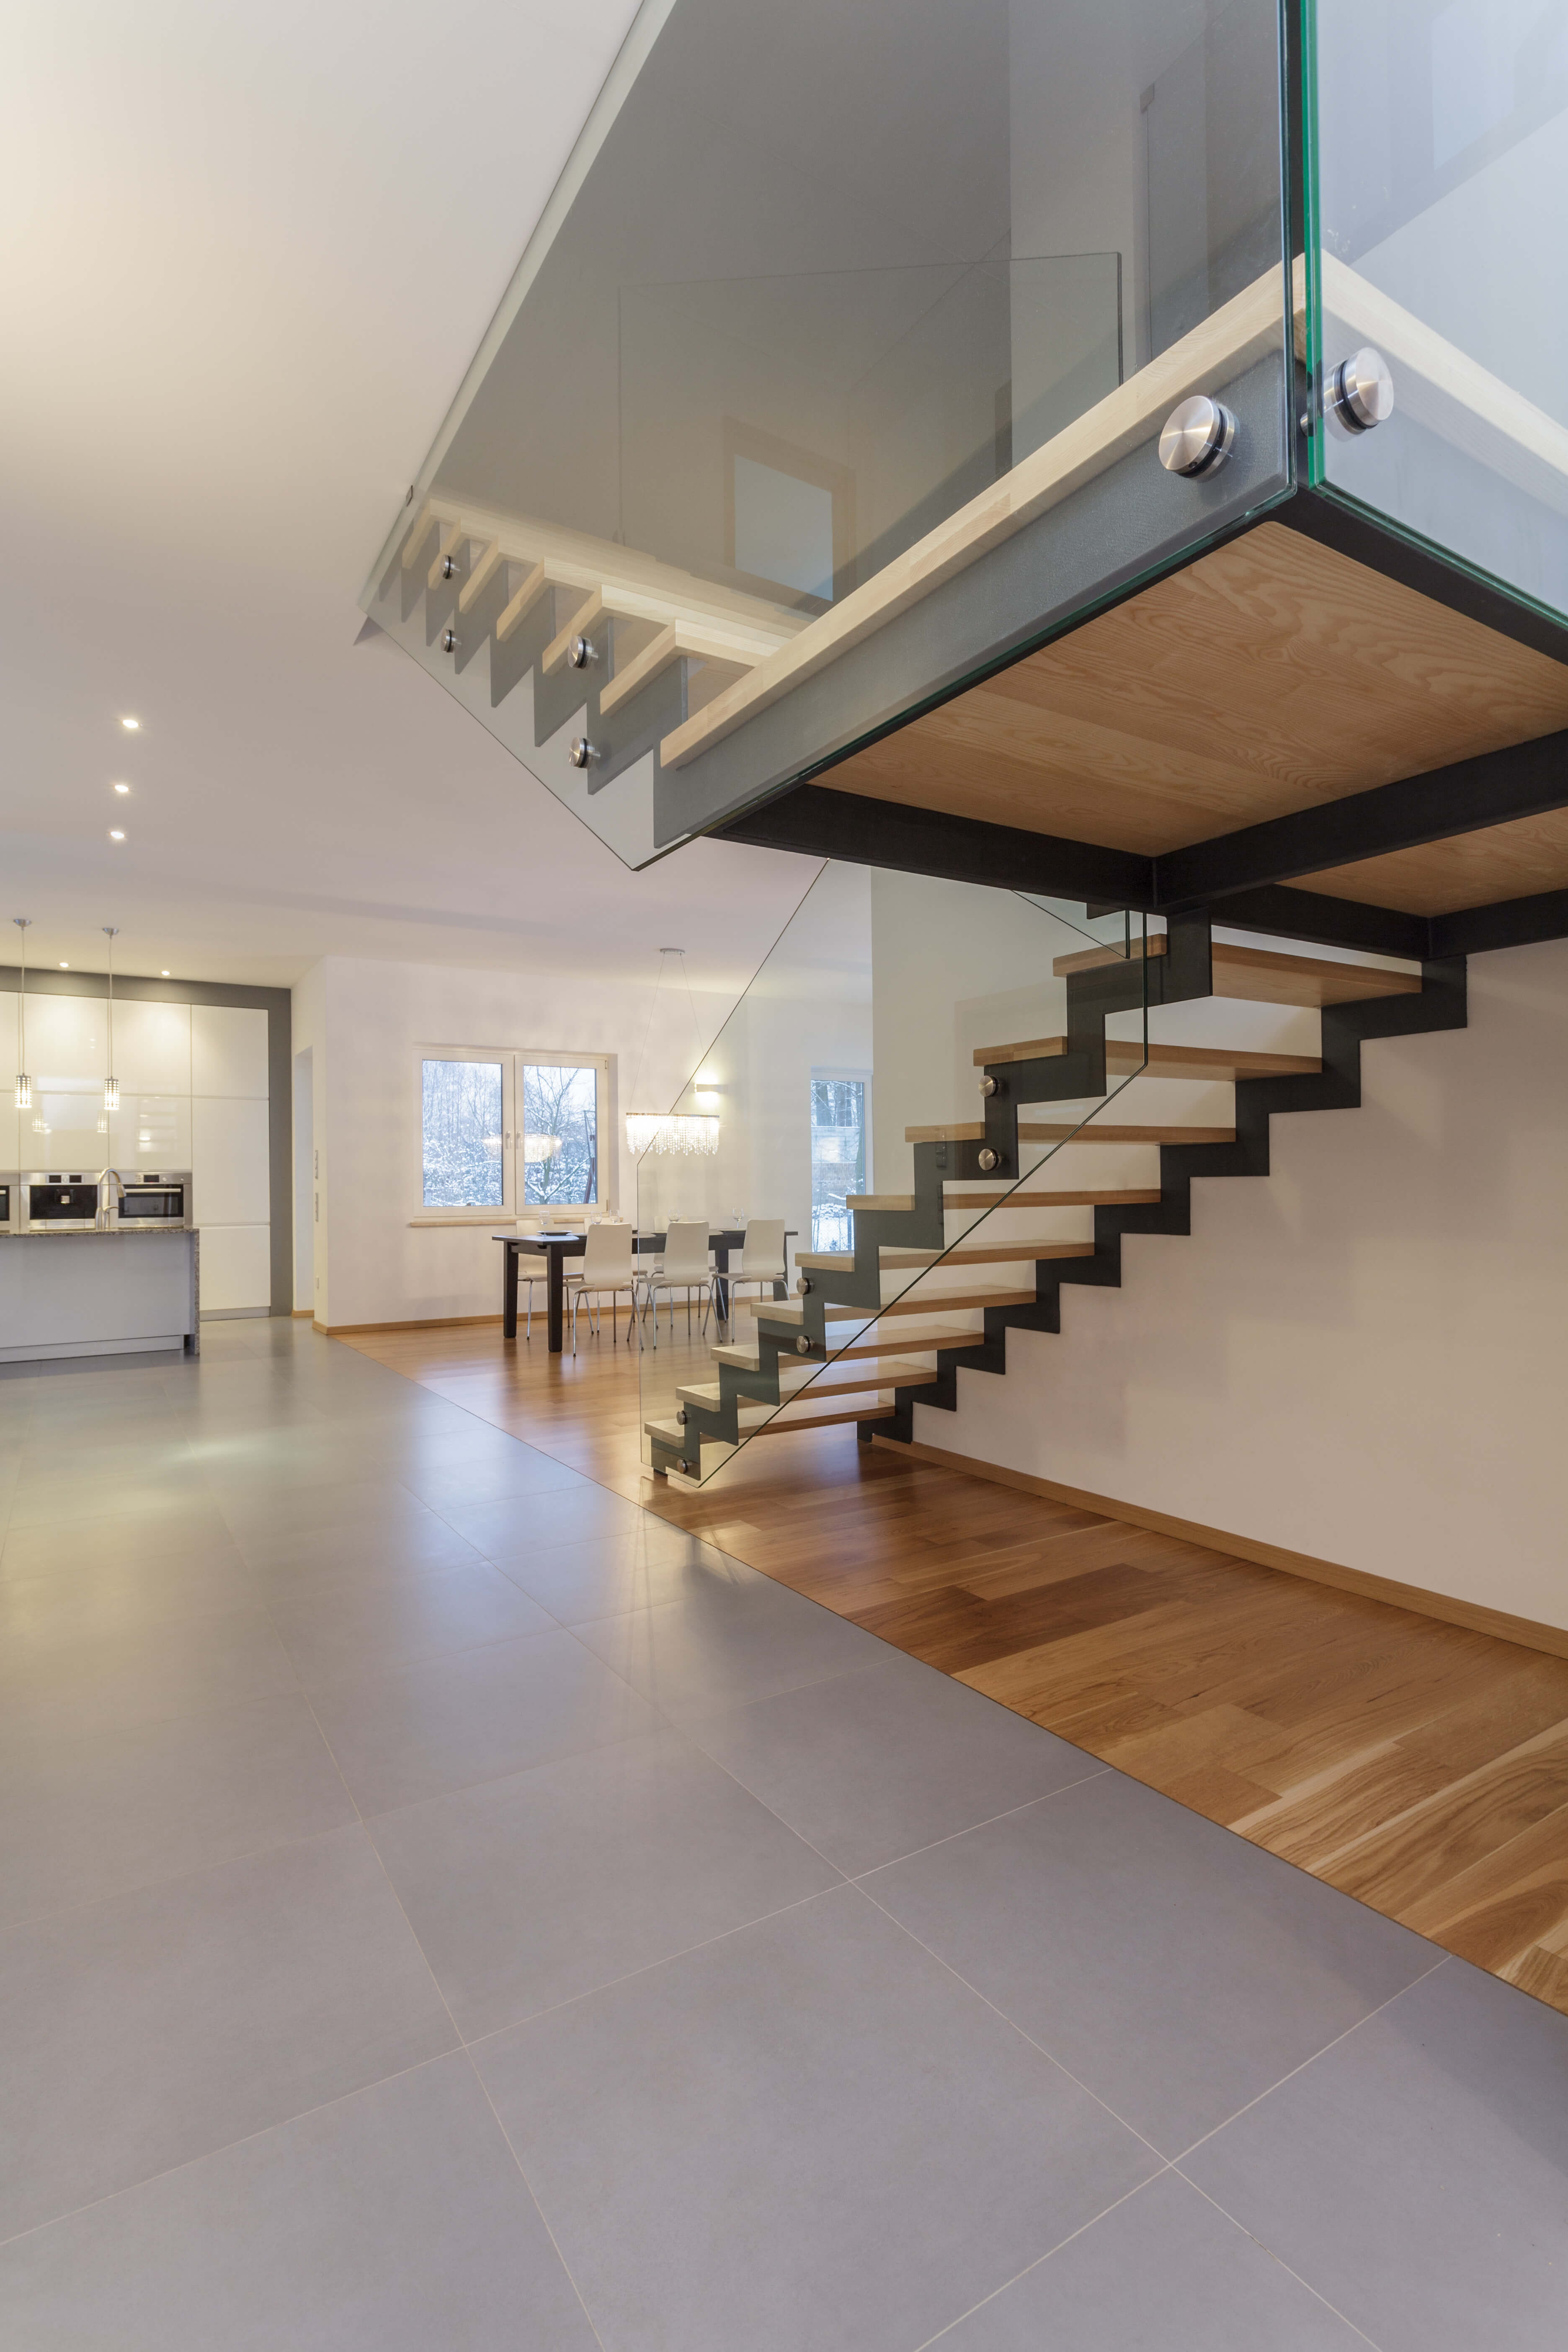 190 spectacular staircase designs photos staircase design guide. Black Bedroom Furniture Sets. Home Design Ideas